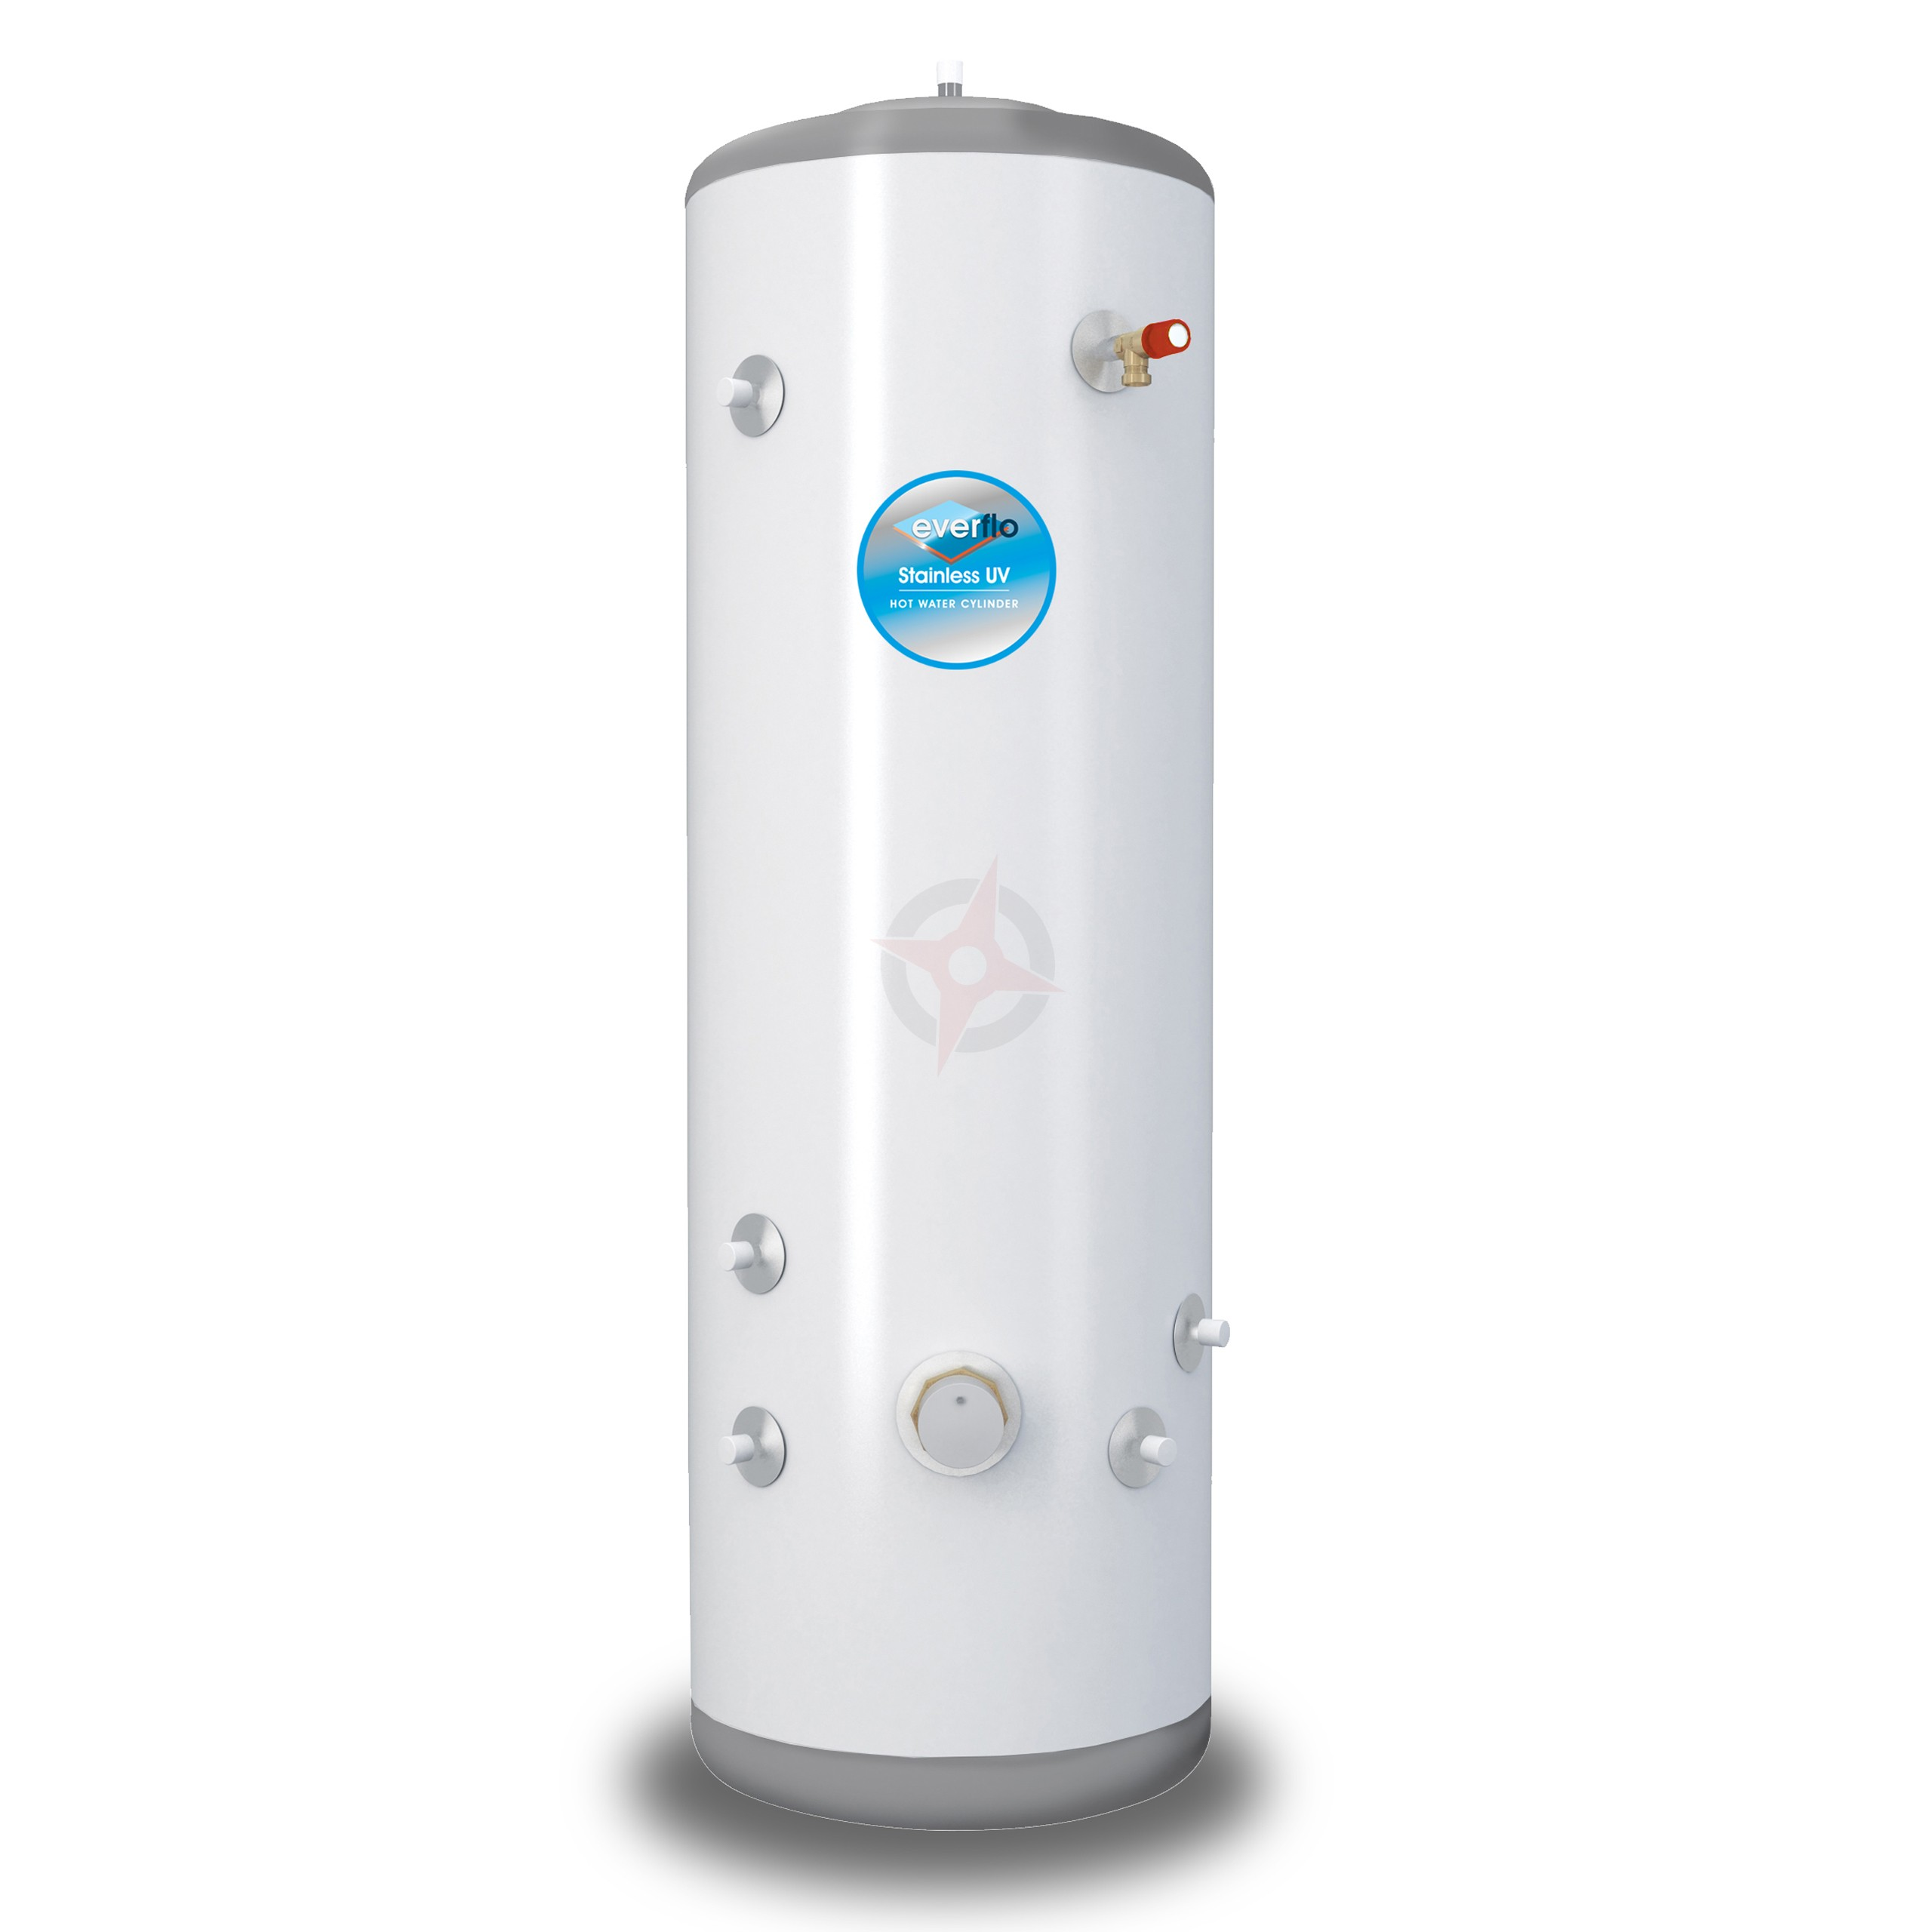 everflo Stainless 90L Indirect Unvented Hot Water Storage Cylinder & Kit